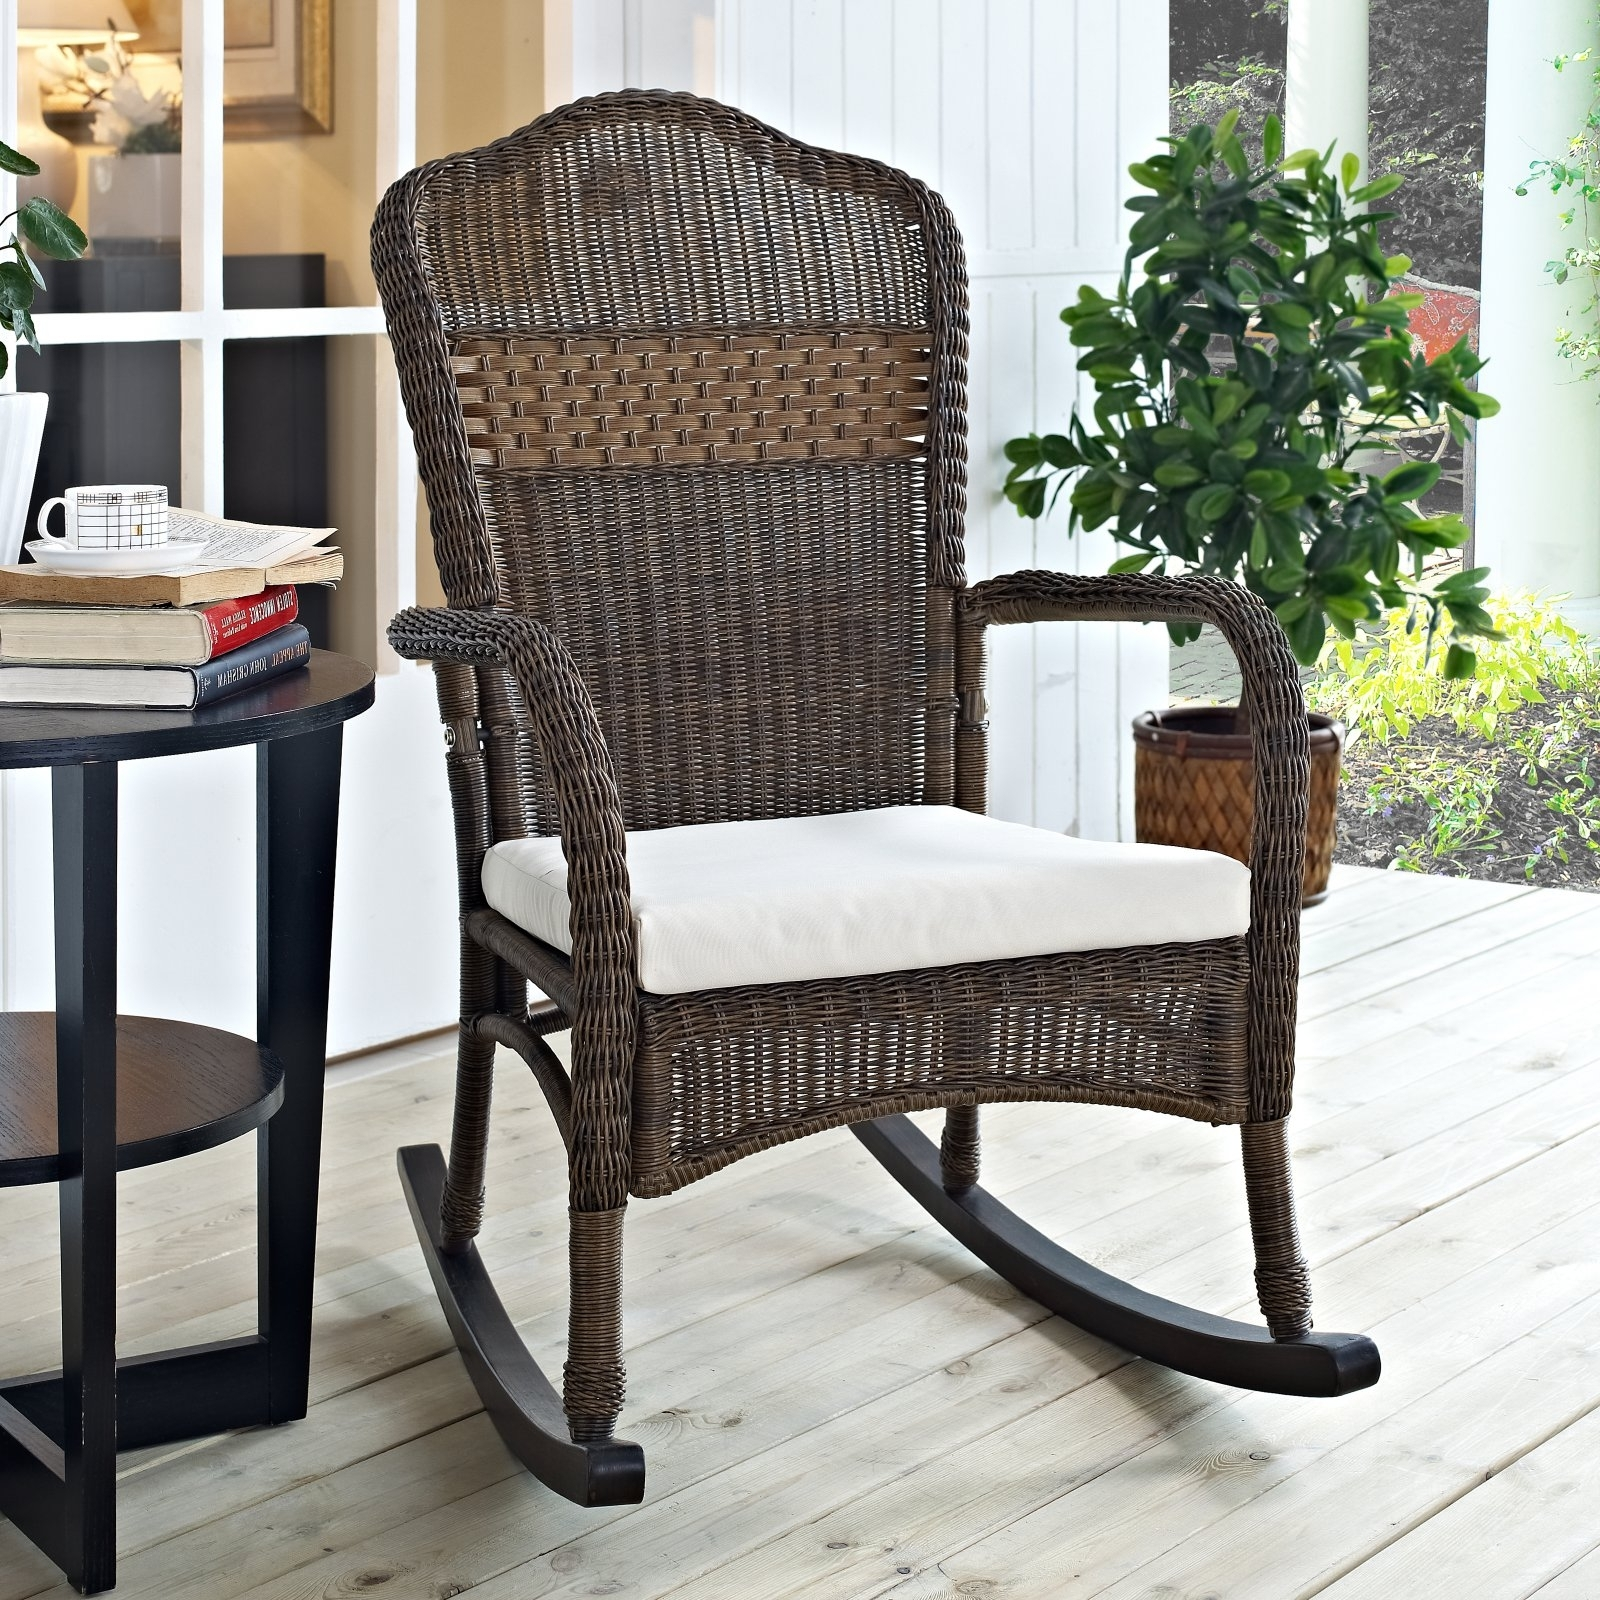 Resin Patio Rocking Chairs Inside Current Coral Coast Mocha Resin Wicker Rocking Chair With Beige Cushion (View 3 of 15)